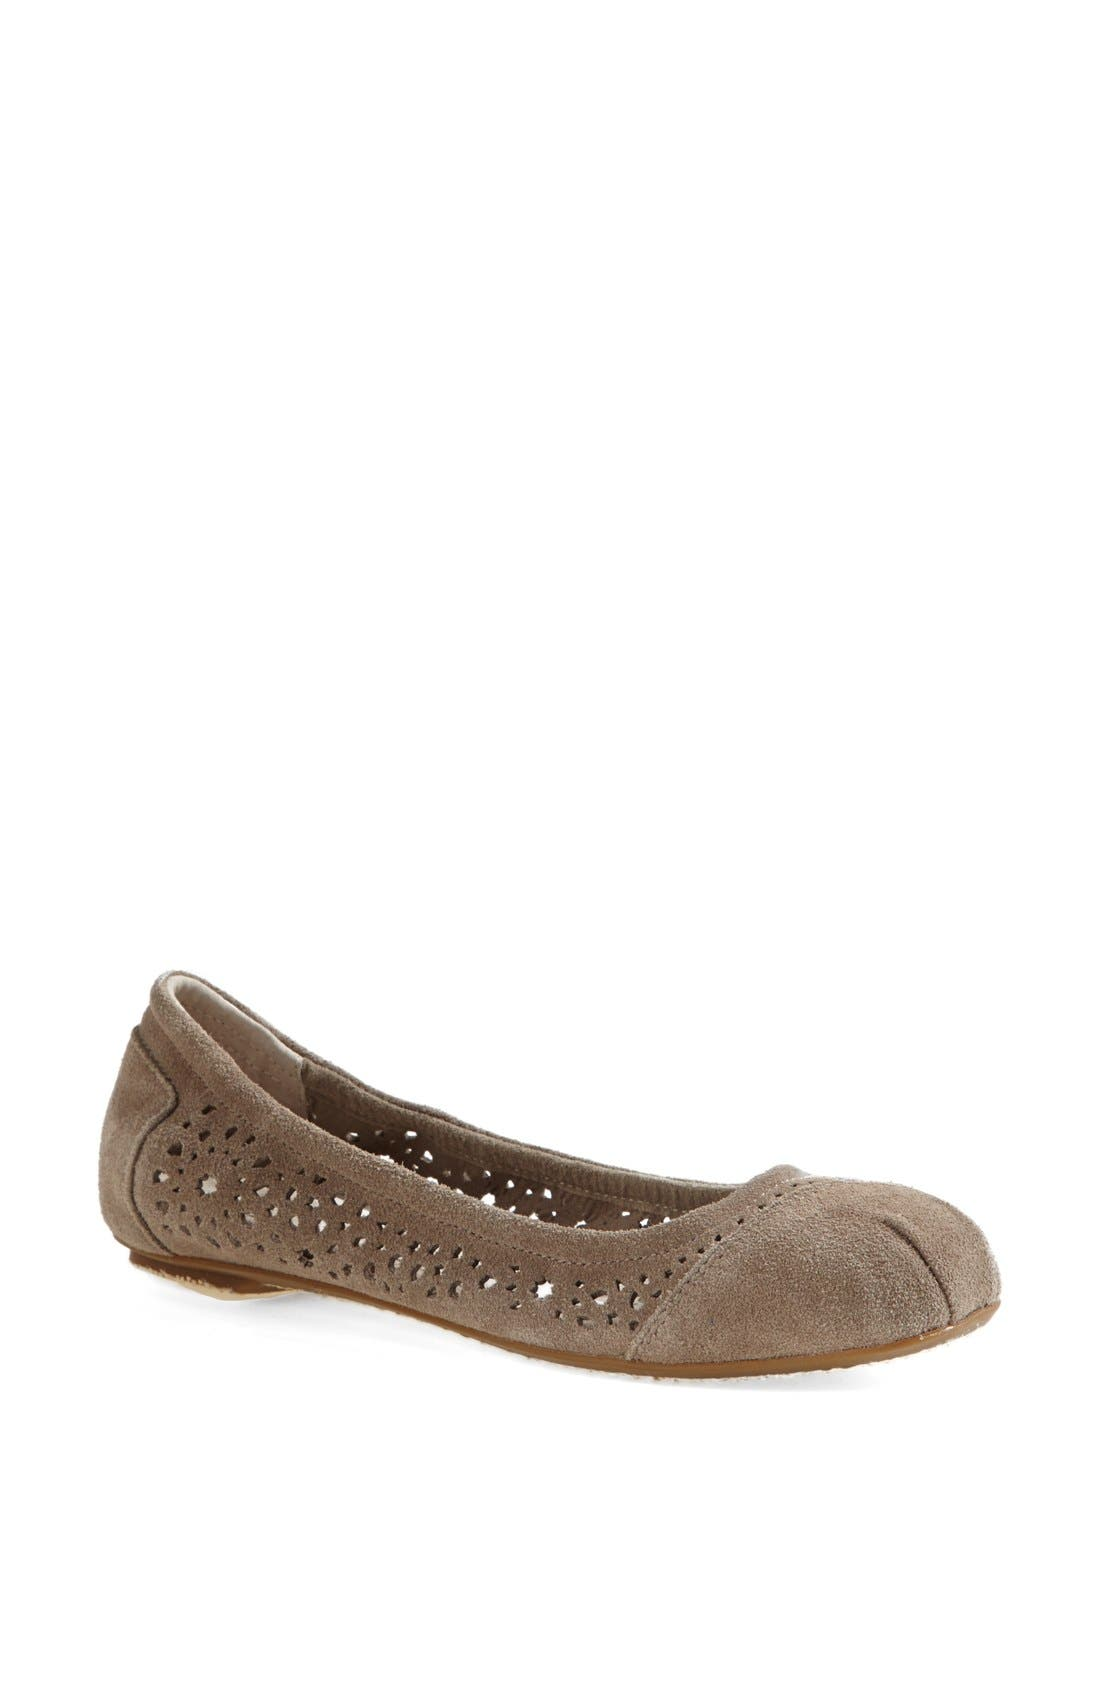 Alternate Image 1 Selected - TOMS 'Moroccan' Perforated Ballet Flat (Women)